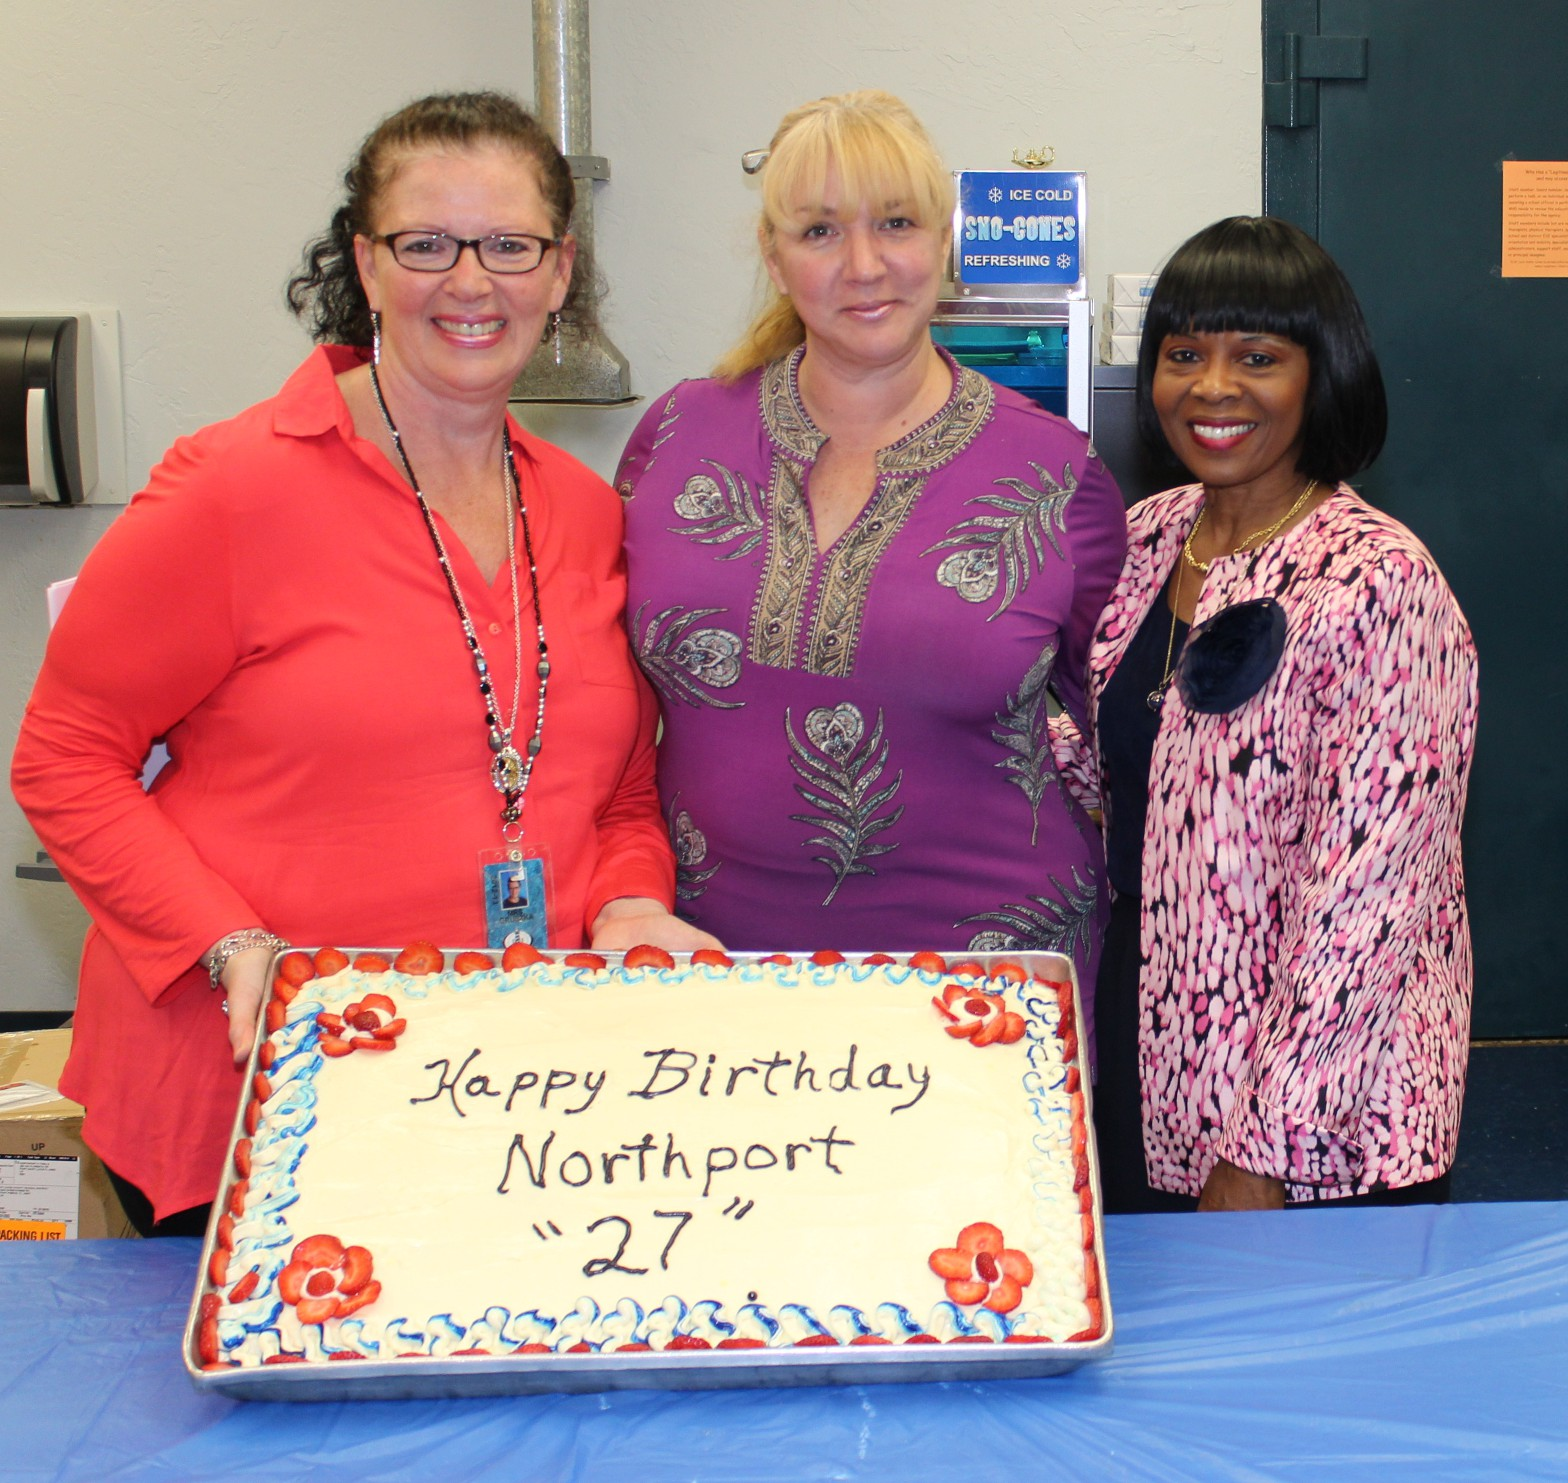 Northport celebrates 27 years